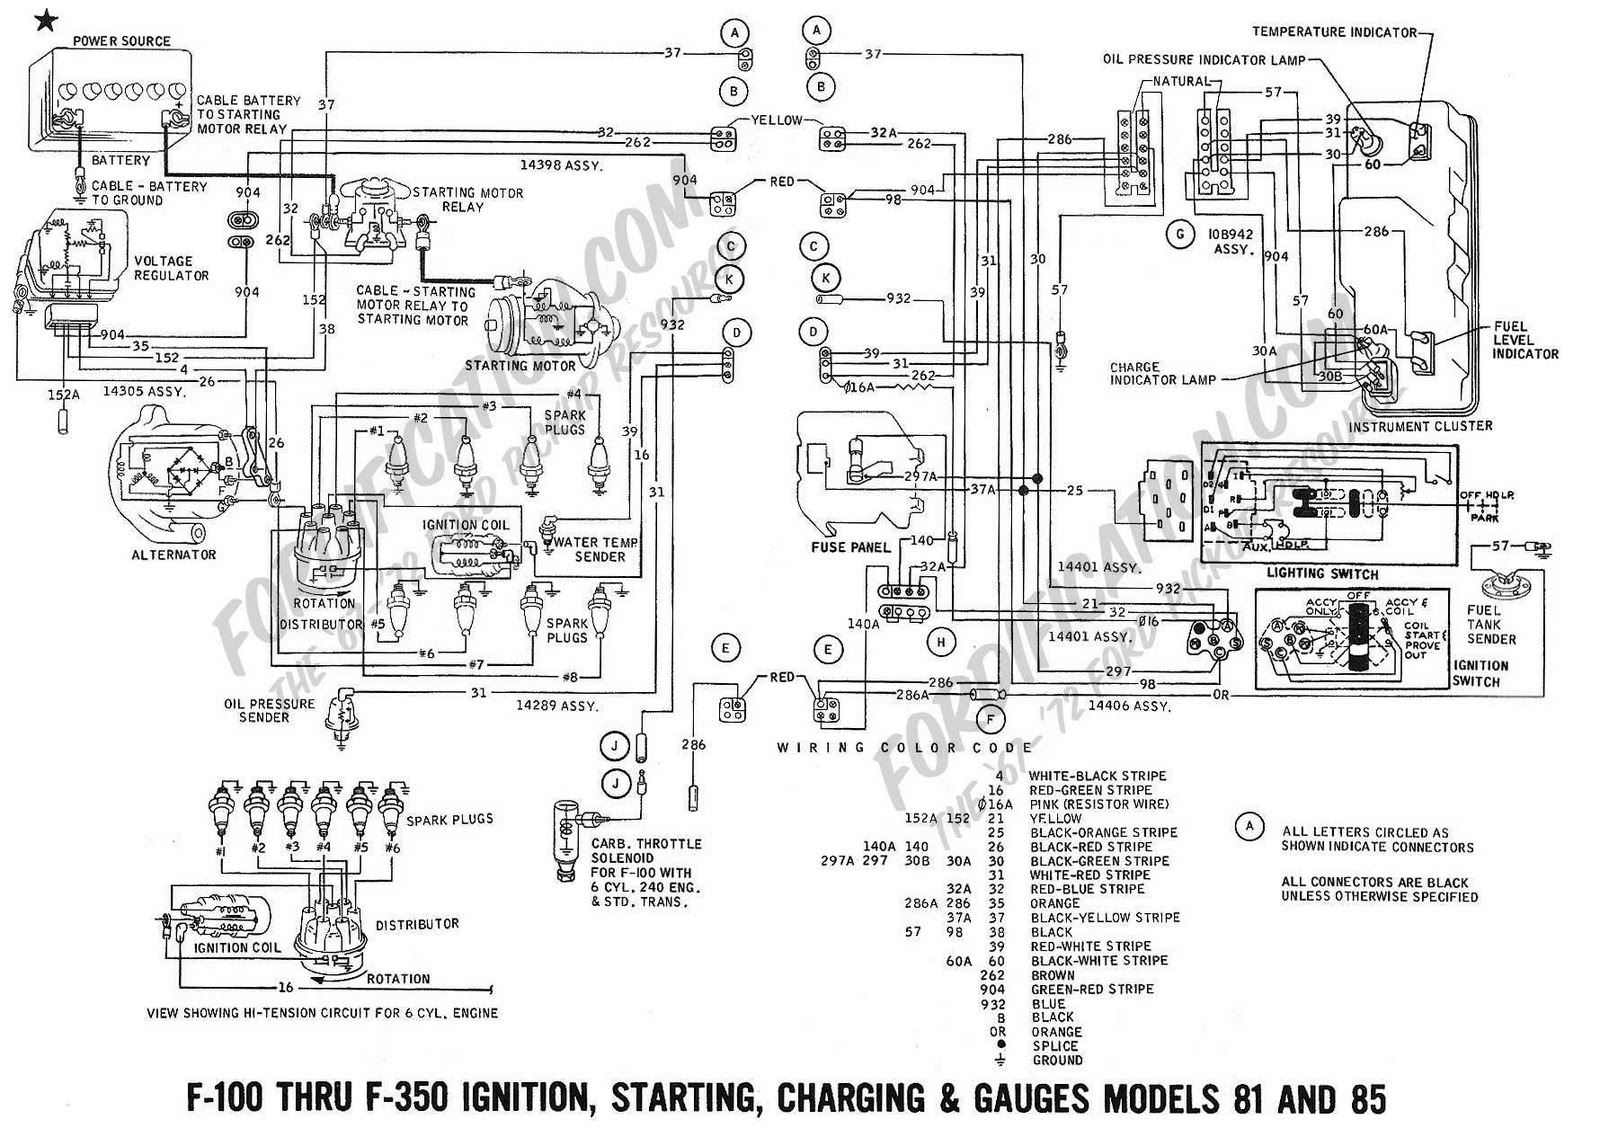 1969 Ford F100 F350 Ignition Starting Charging And Gauges Wiring Diagram 89 f250 tail light wiring diagram wiring diagram byblank  at eliteediting.co